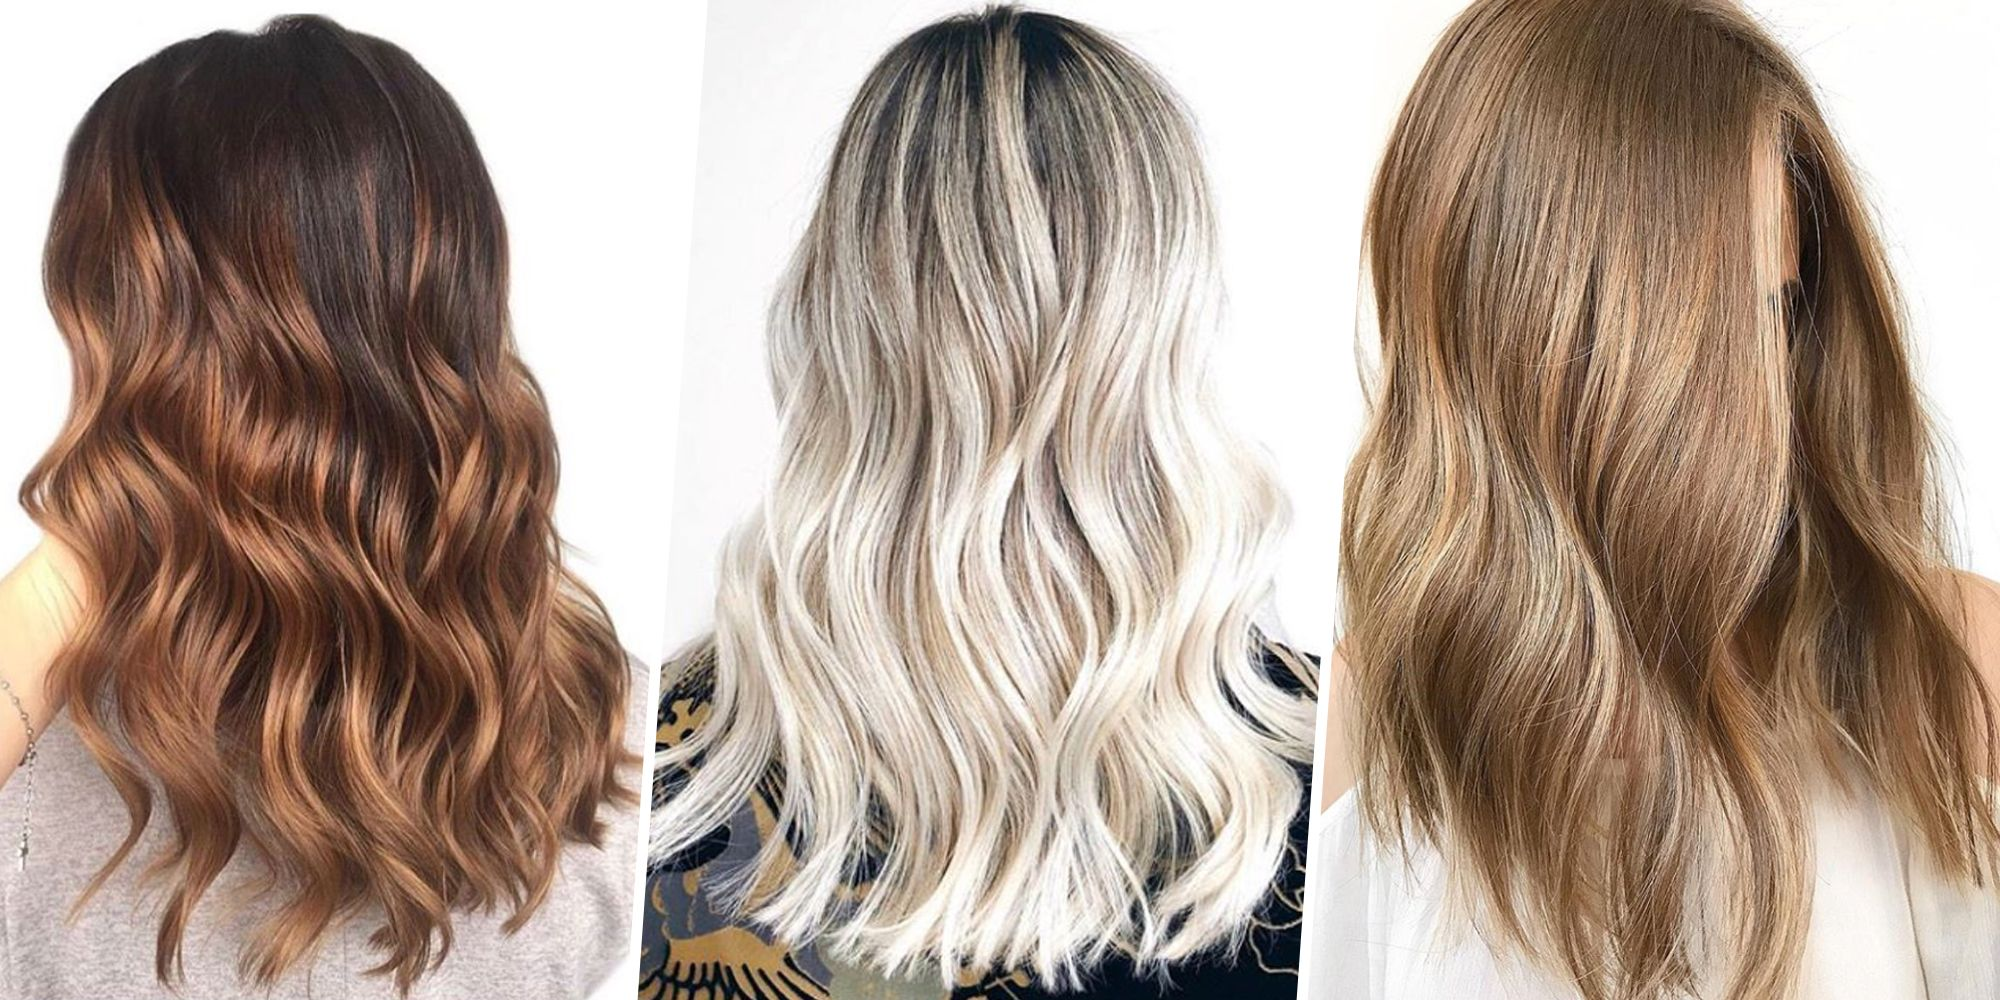 7 Prettiest Spring Hair Colors 2018 New Hair Dye Trends for Spring